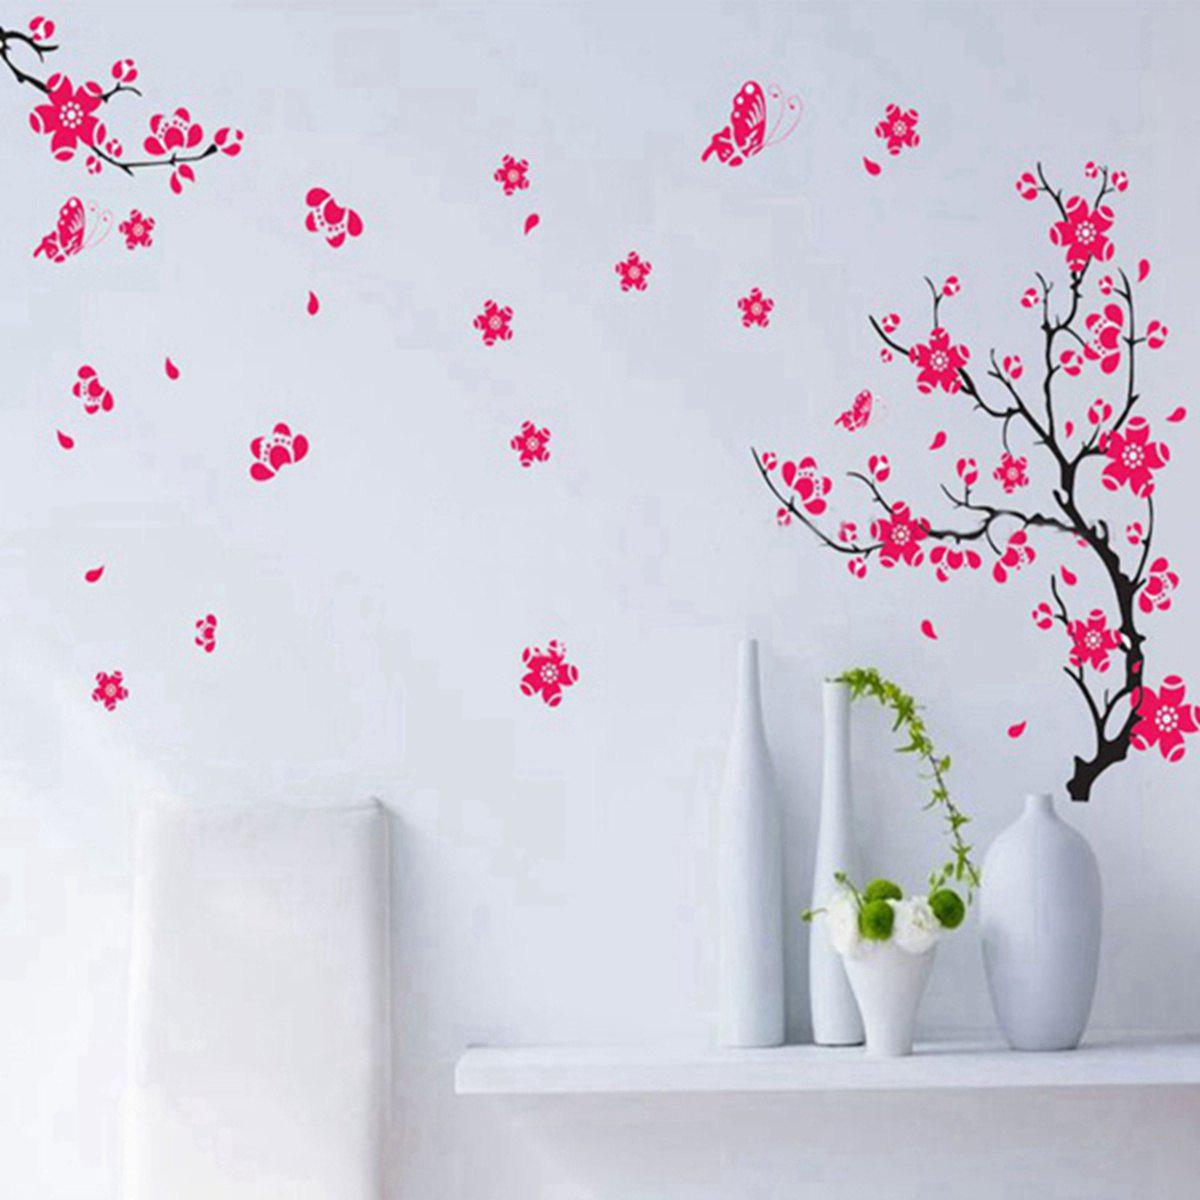 Peach Blossom Style Wall Sticker Home Appliances Decor Wall Decals peach cb 150e